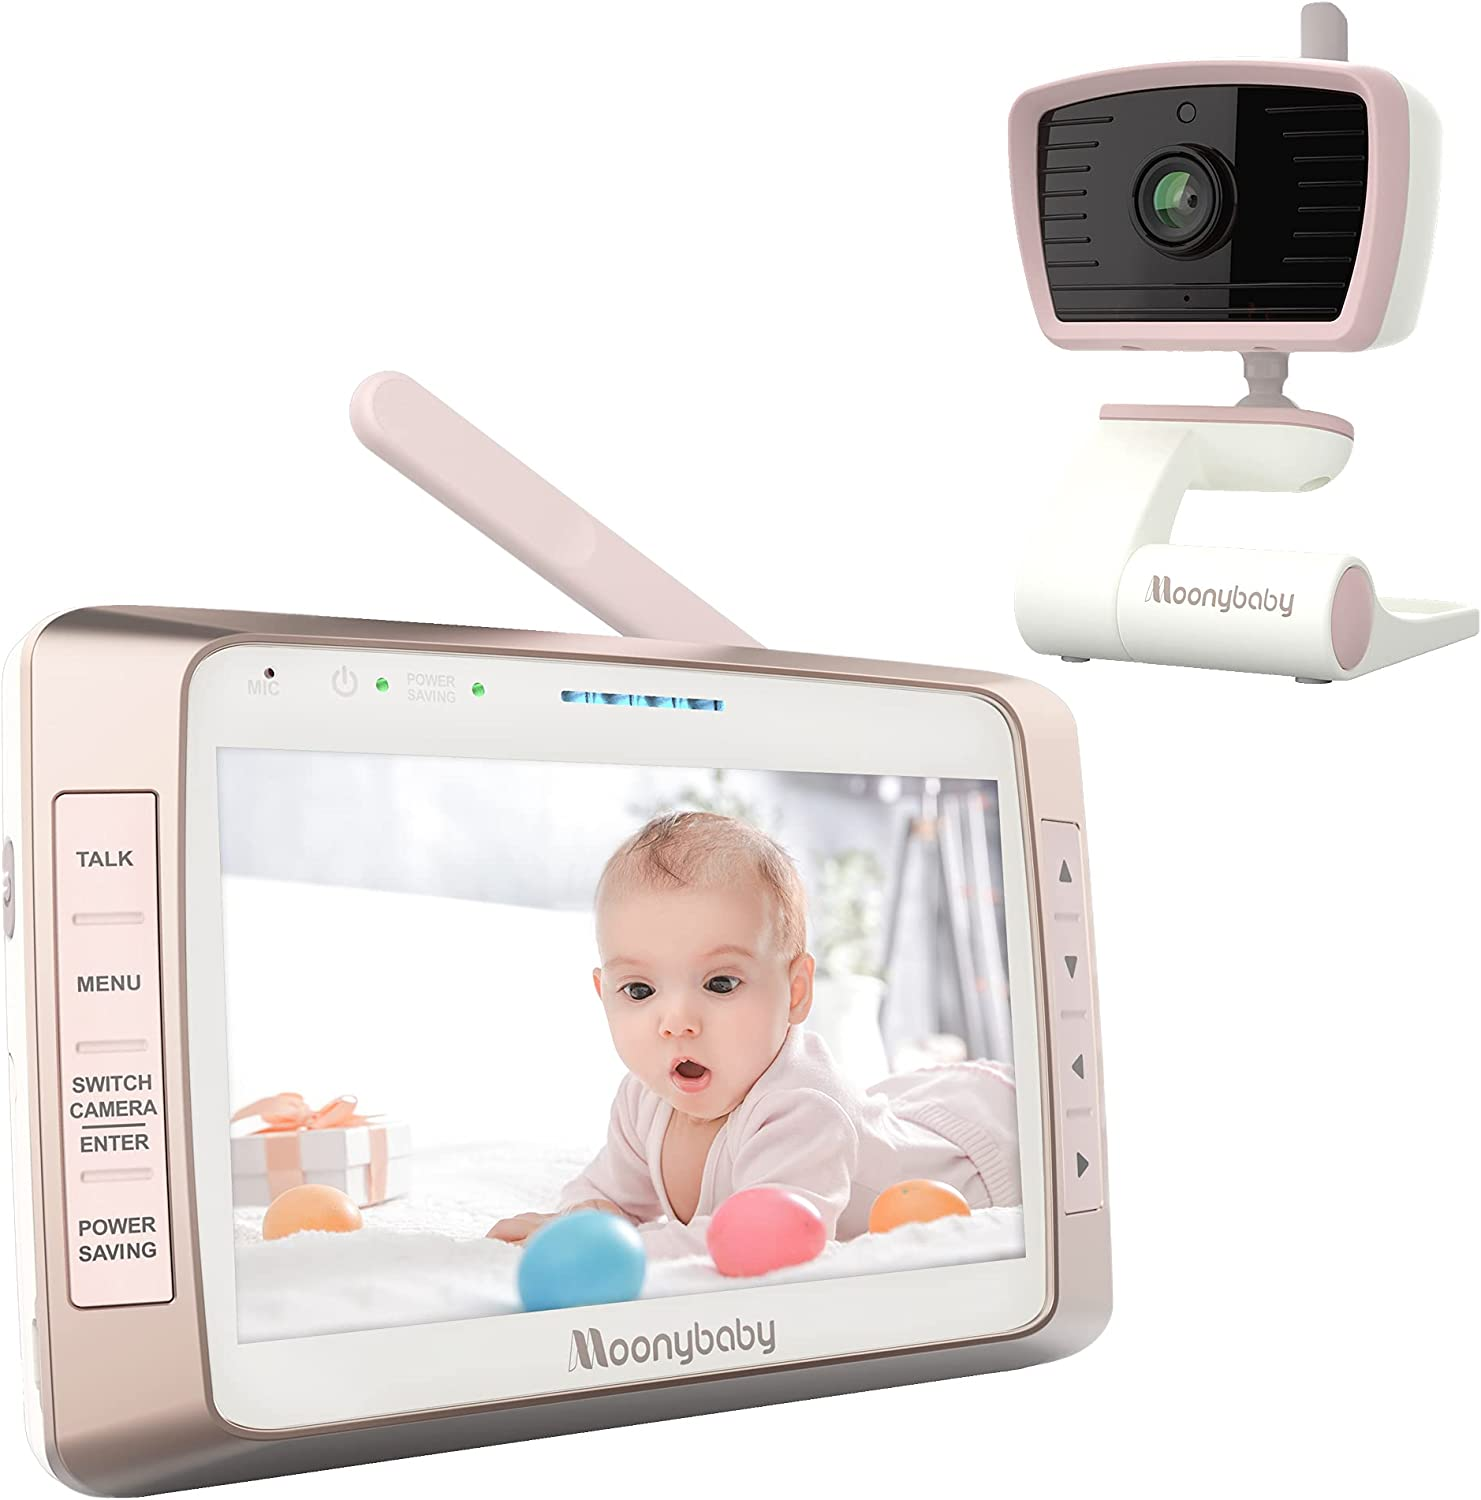 Moonybaby Long Range No WiFi Baby Monitor with Large Screen, Long Battery Life, Auto Night Vision, Talk Back, Auto Scan, Lullabies, Power Saving/Voice Activation, Trust 50s